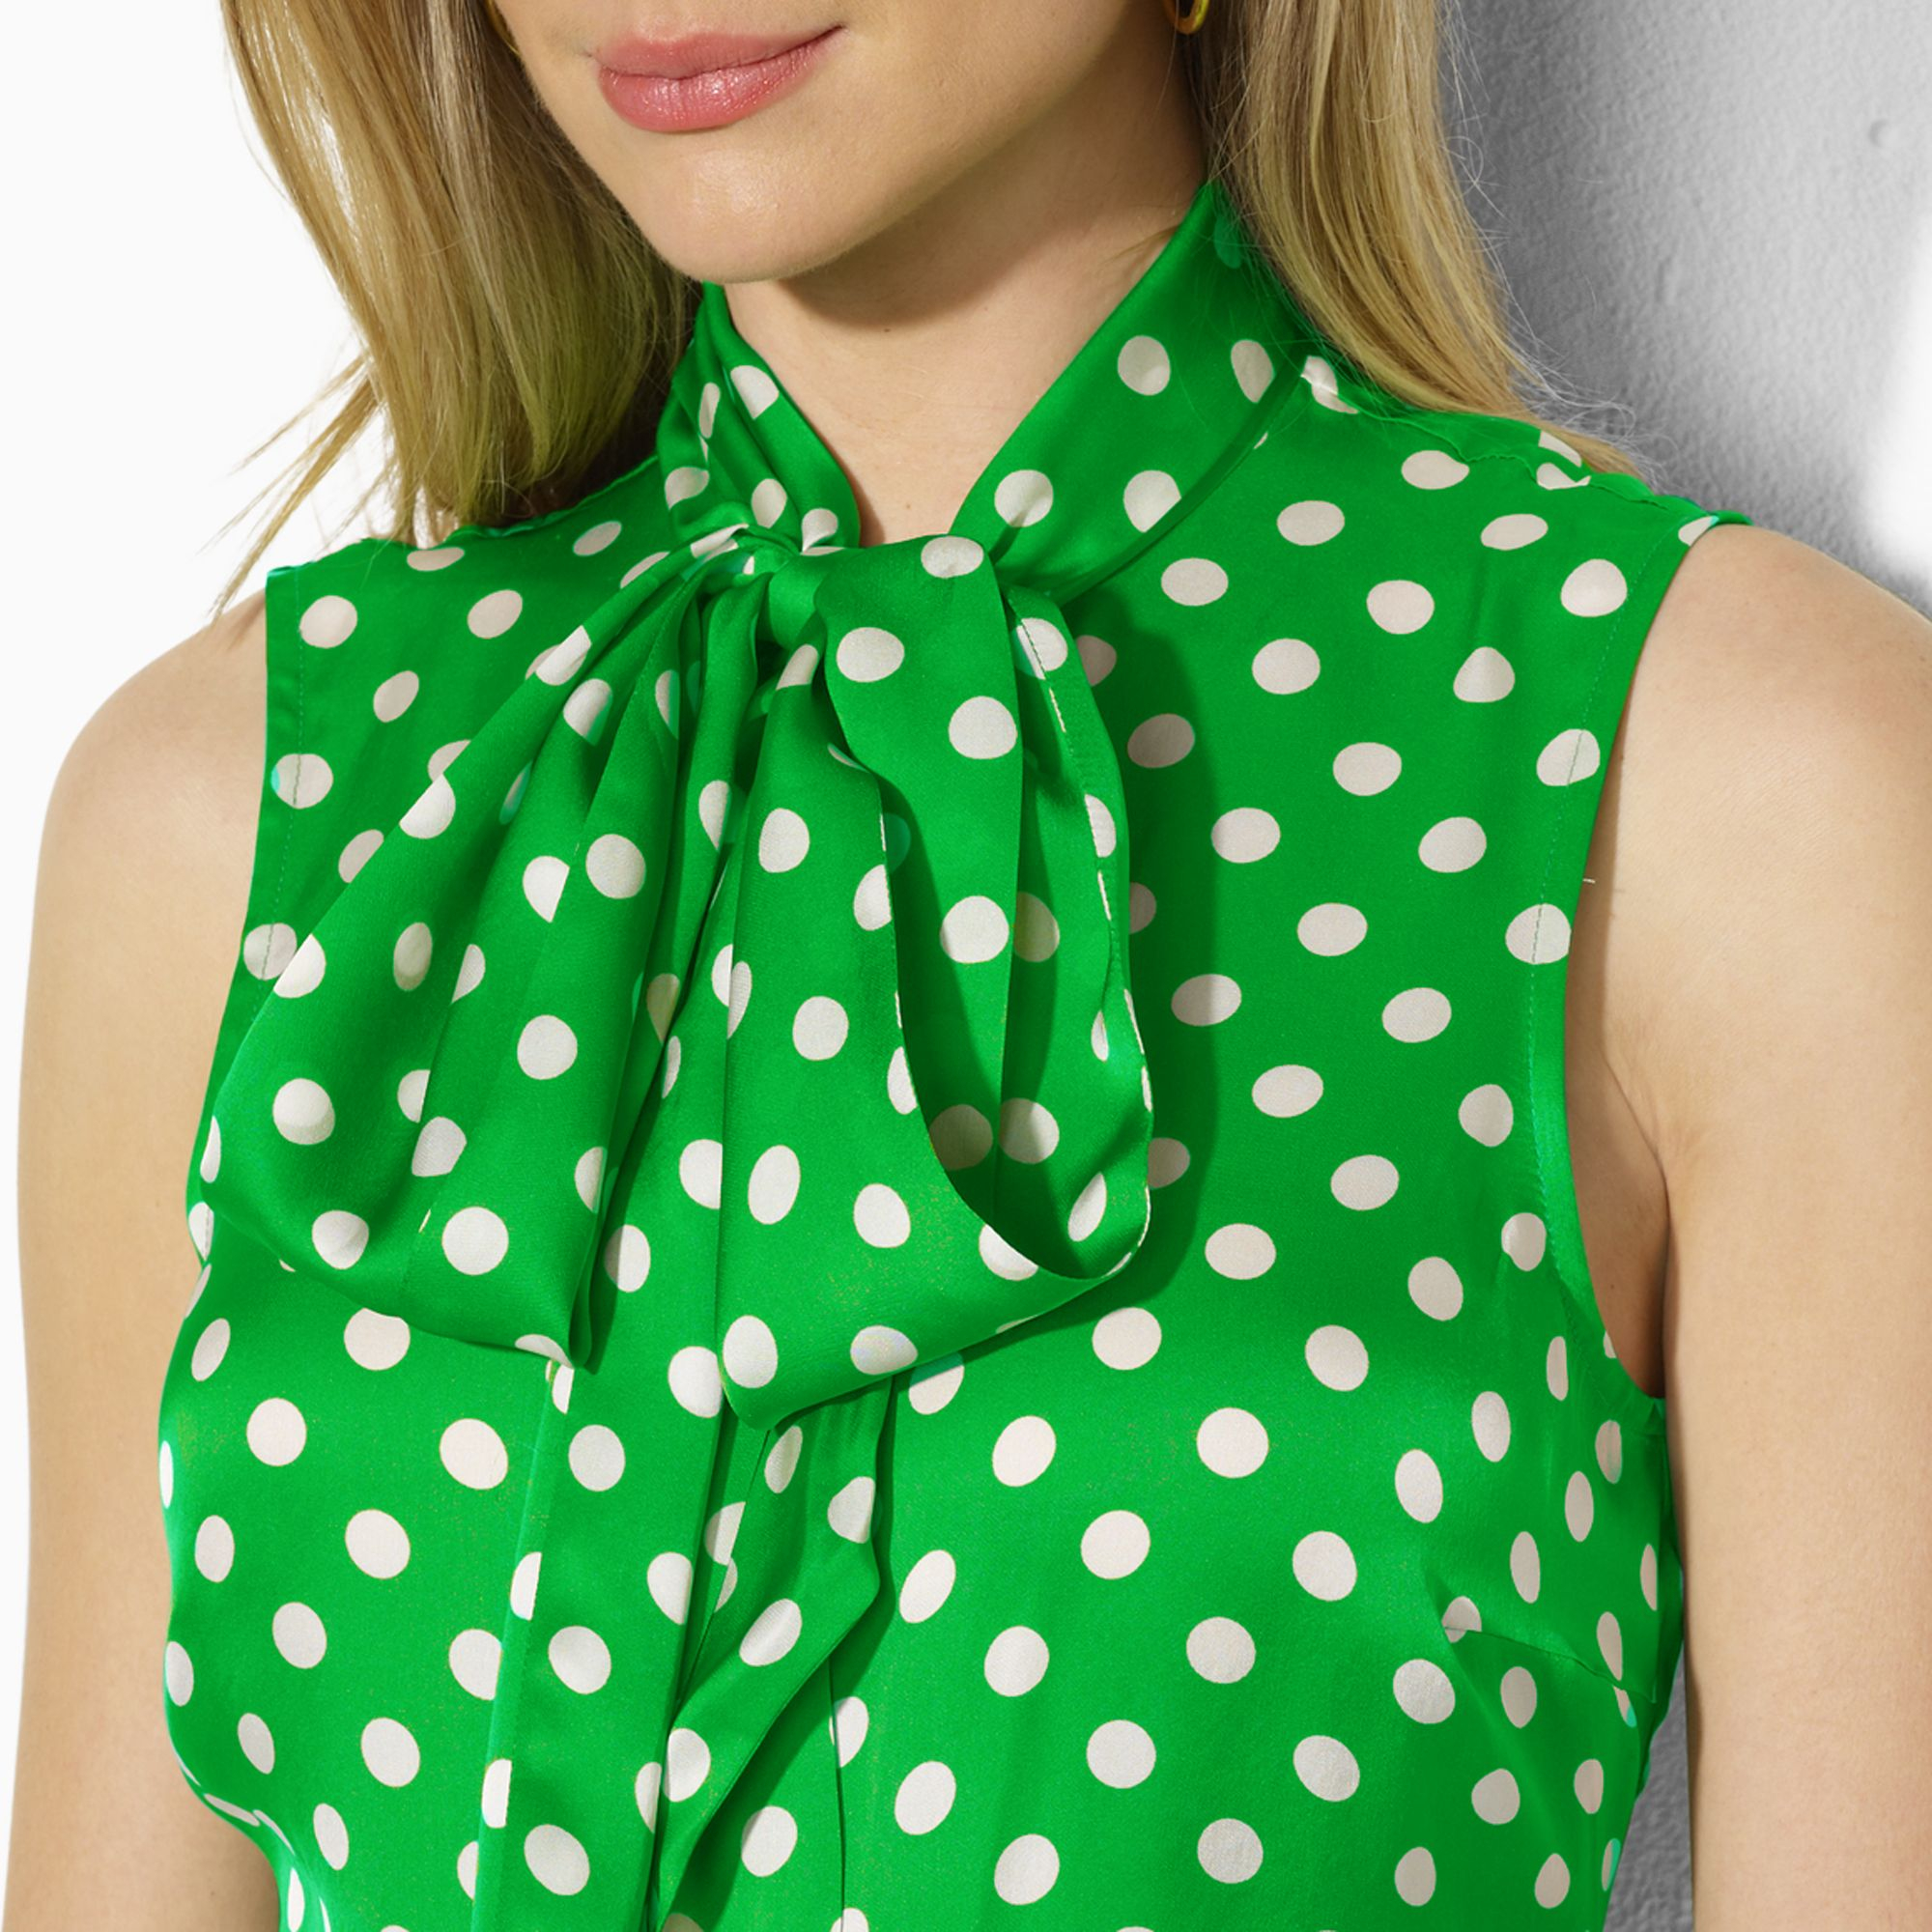 Find Polka Dot fashion fabric at free-desktop-stripper.ml! Free shipping on domestic orders $49+. Free Returns. Shop classic polka dot fabric for dresses, tops, shirts and more! Polka Dot knit fabric, cotton fabric, crepe fabric, minky fabric and more!